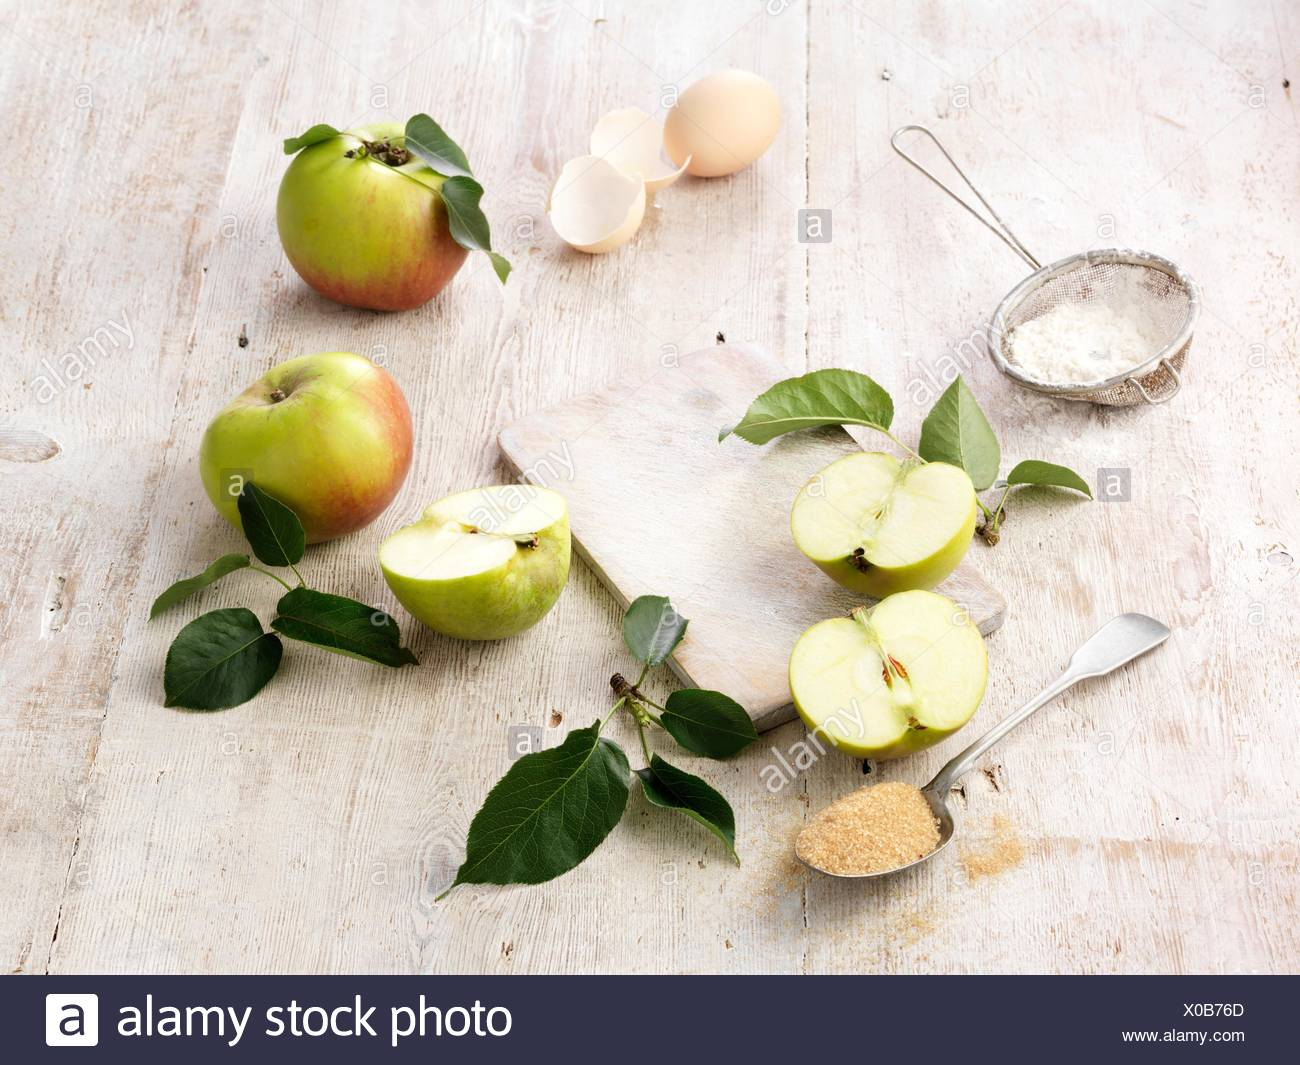 Ingredients for eve's pudding on whitewashed wooden table - Stock Image